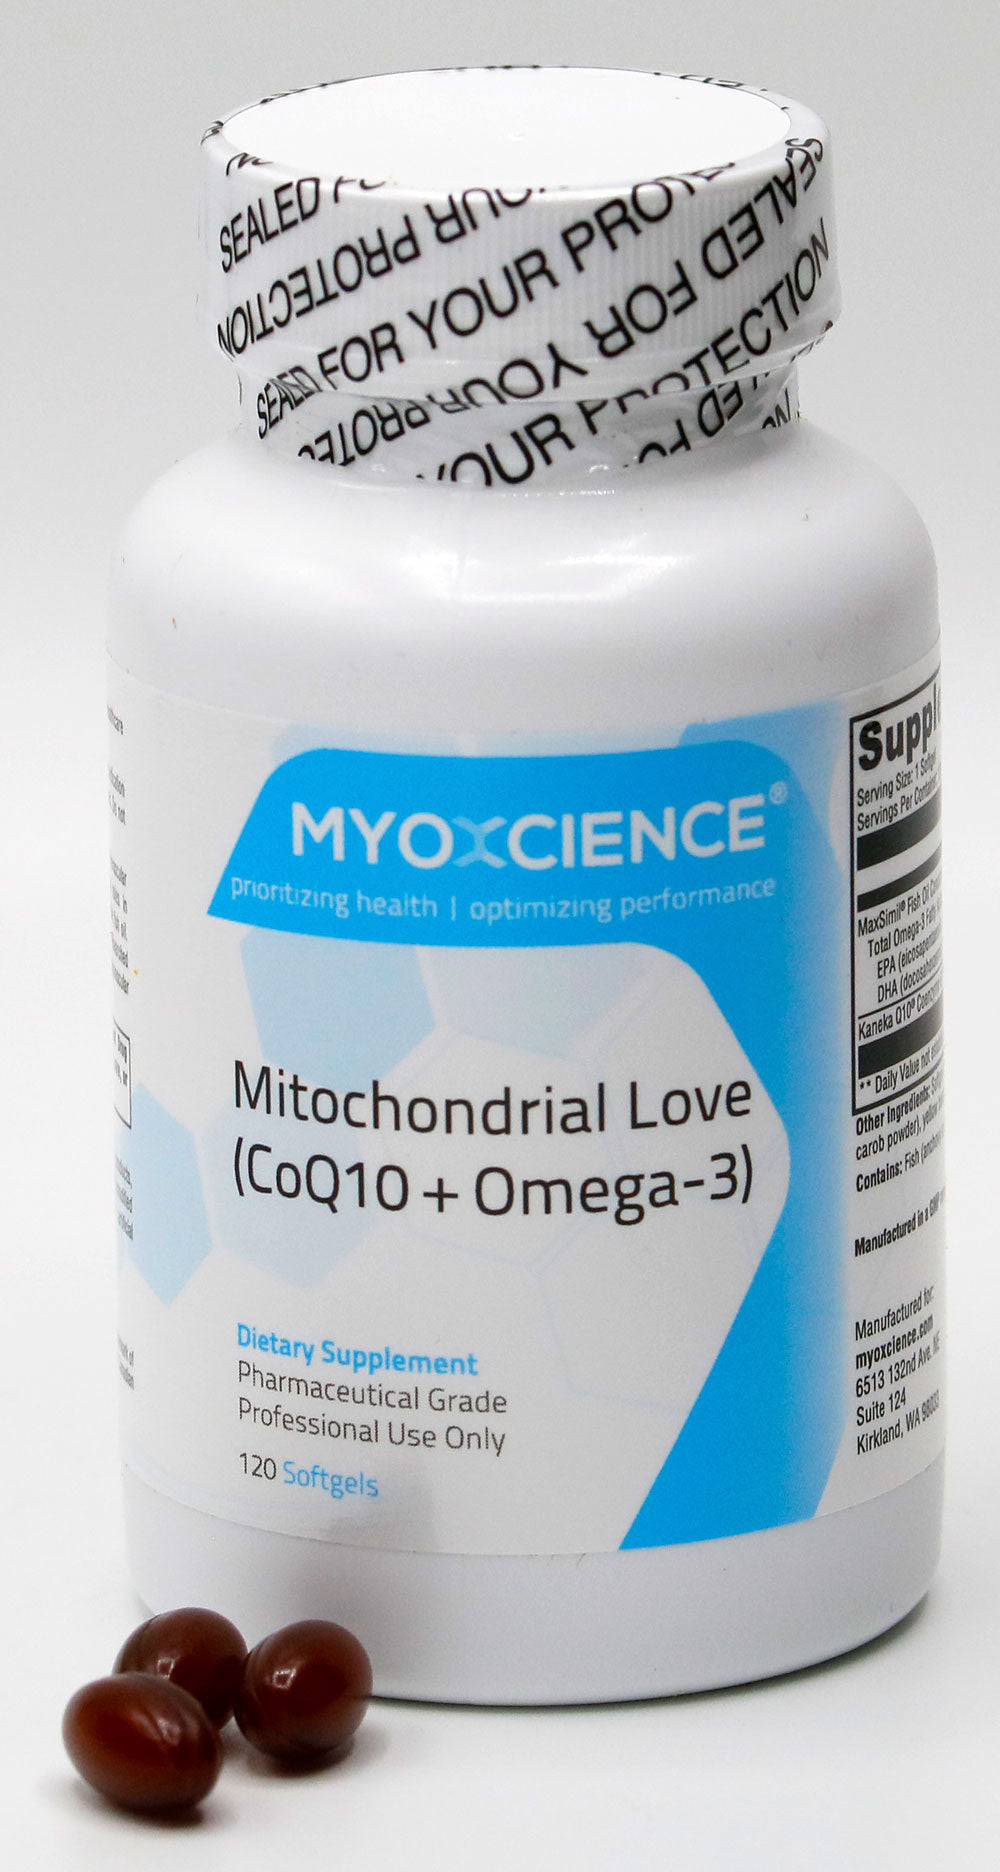 Mitochondrial Love | Coenzyme Q10  Monoglyceride Fish Oil EPA & DHA | Dual-Action Cardiovascular Support